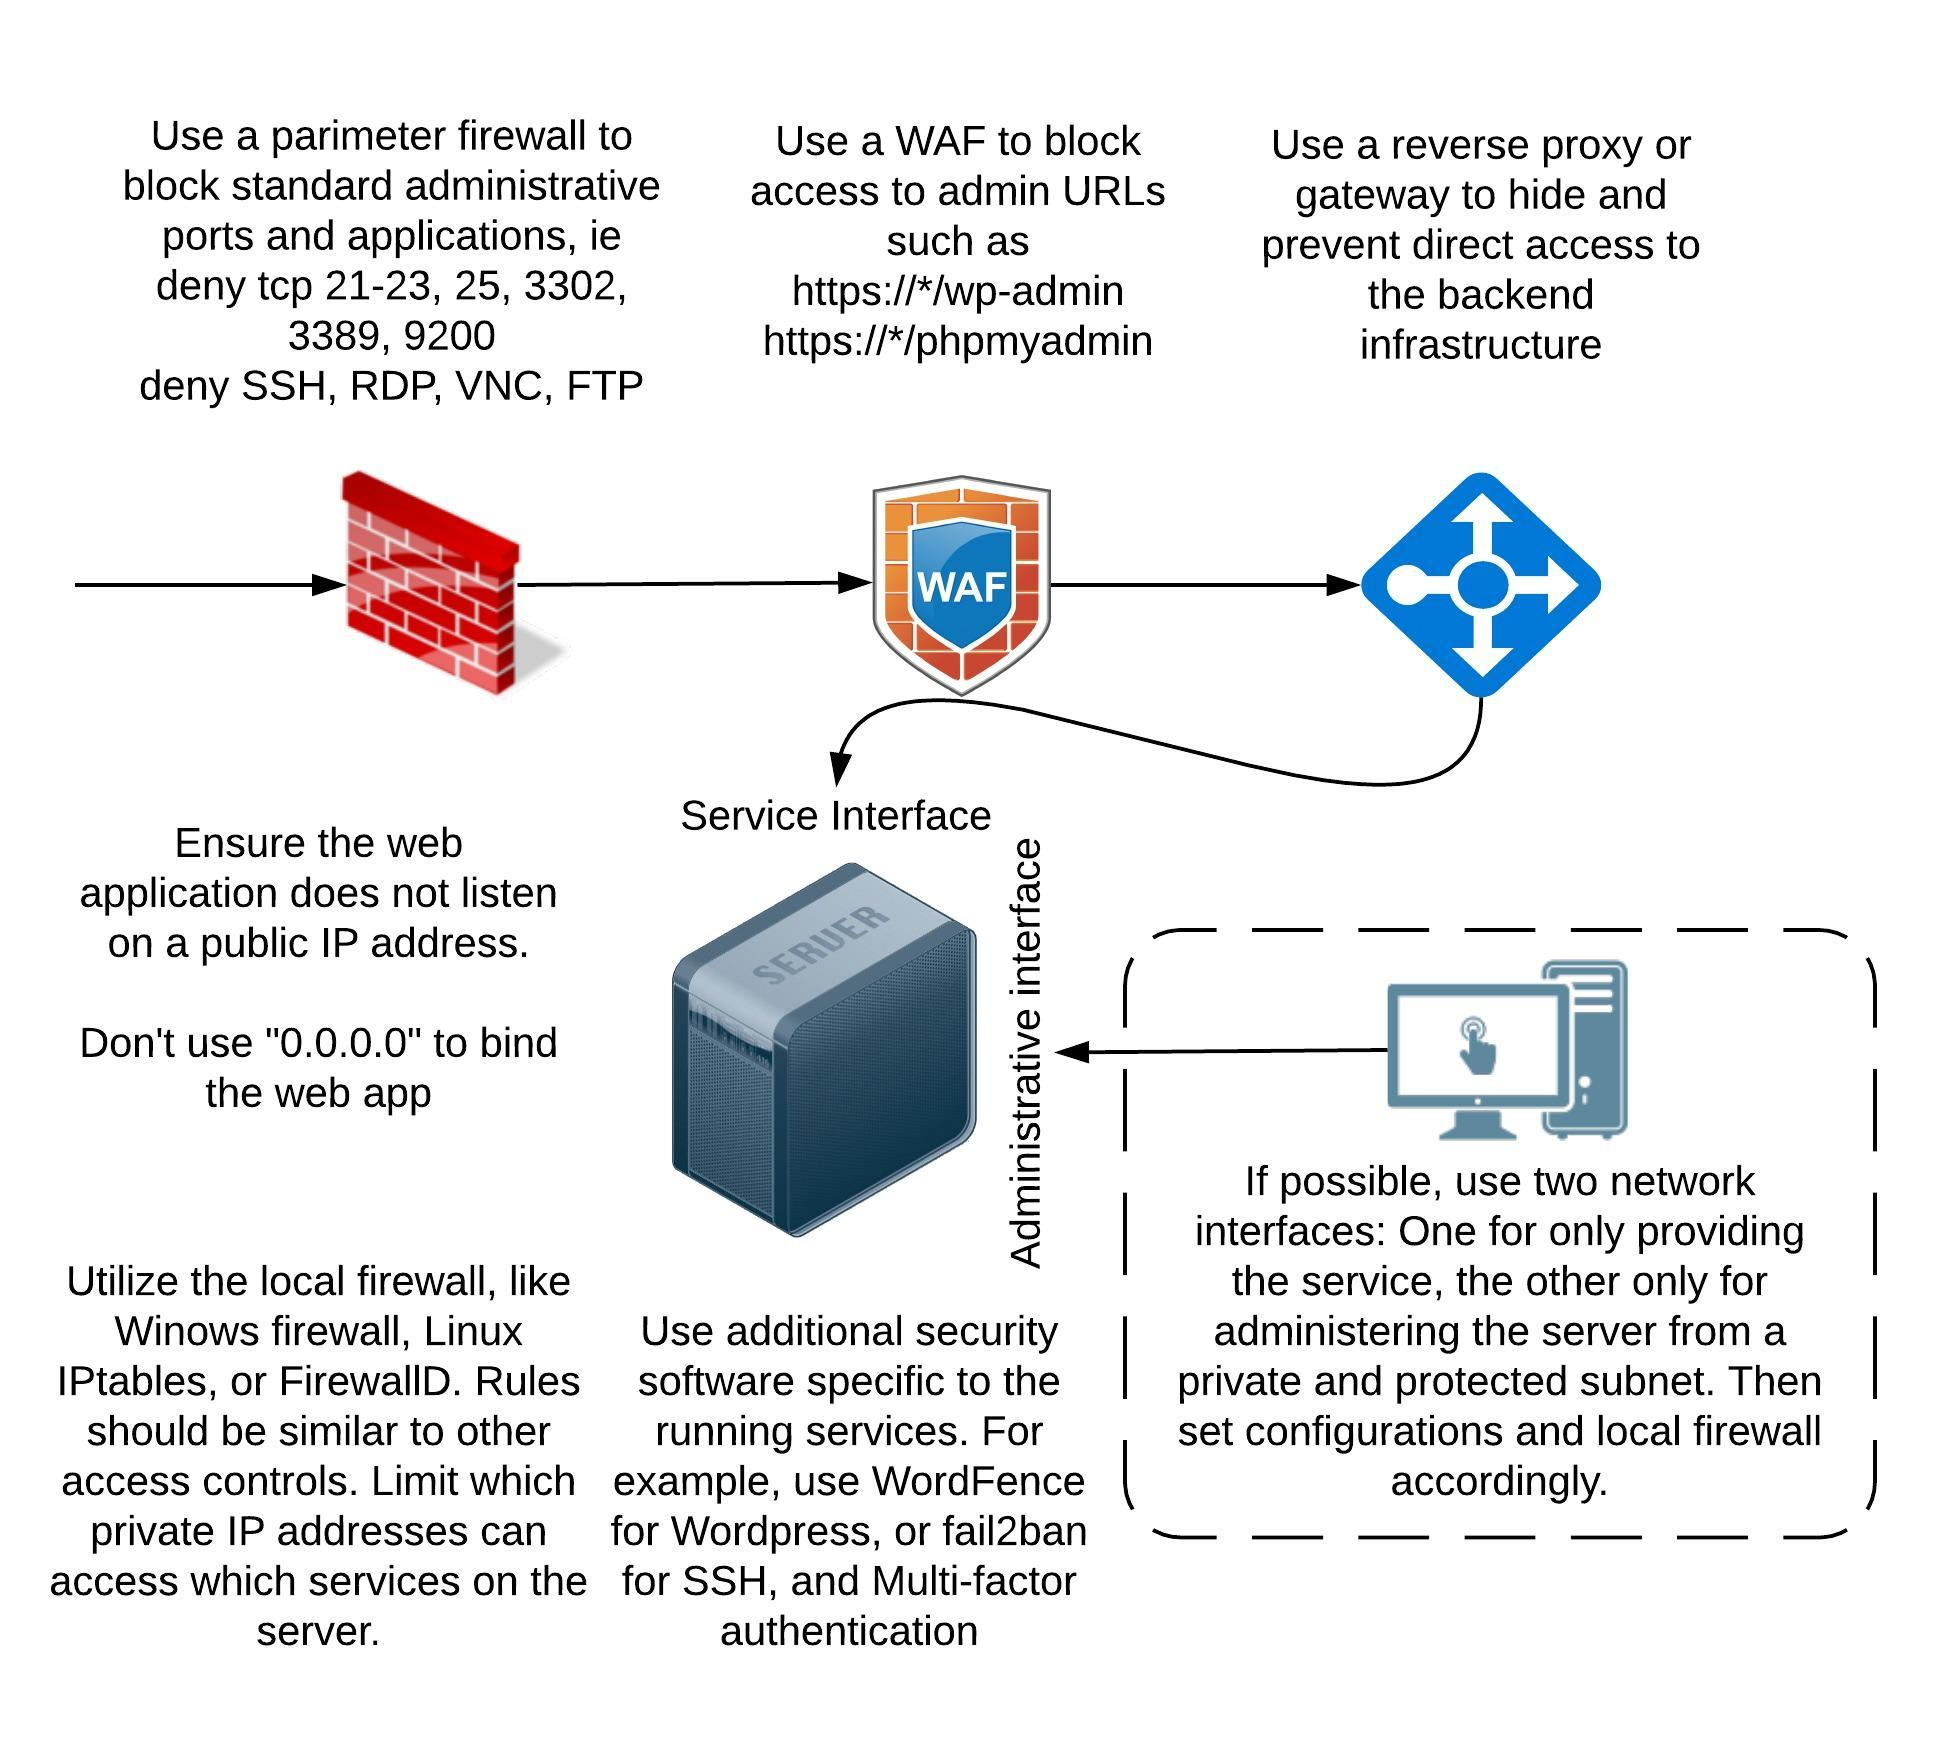 Server Defense in Depth Example Diagram | Dallin Warne